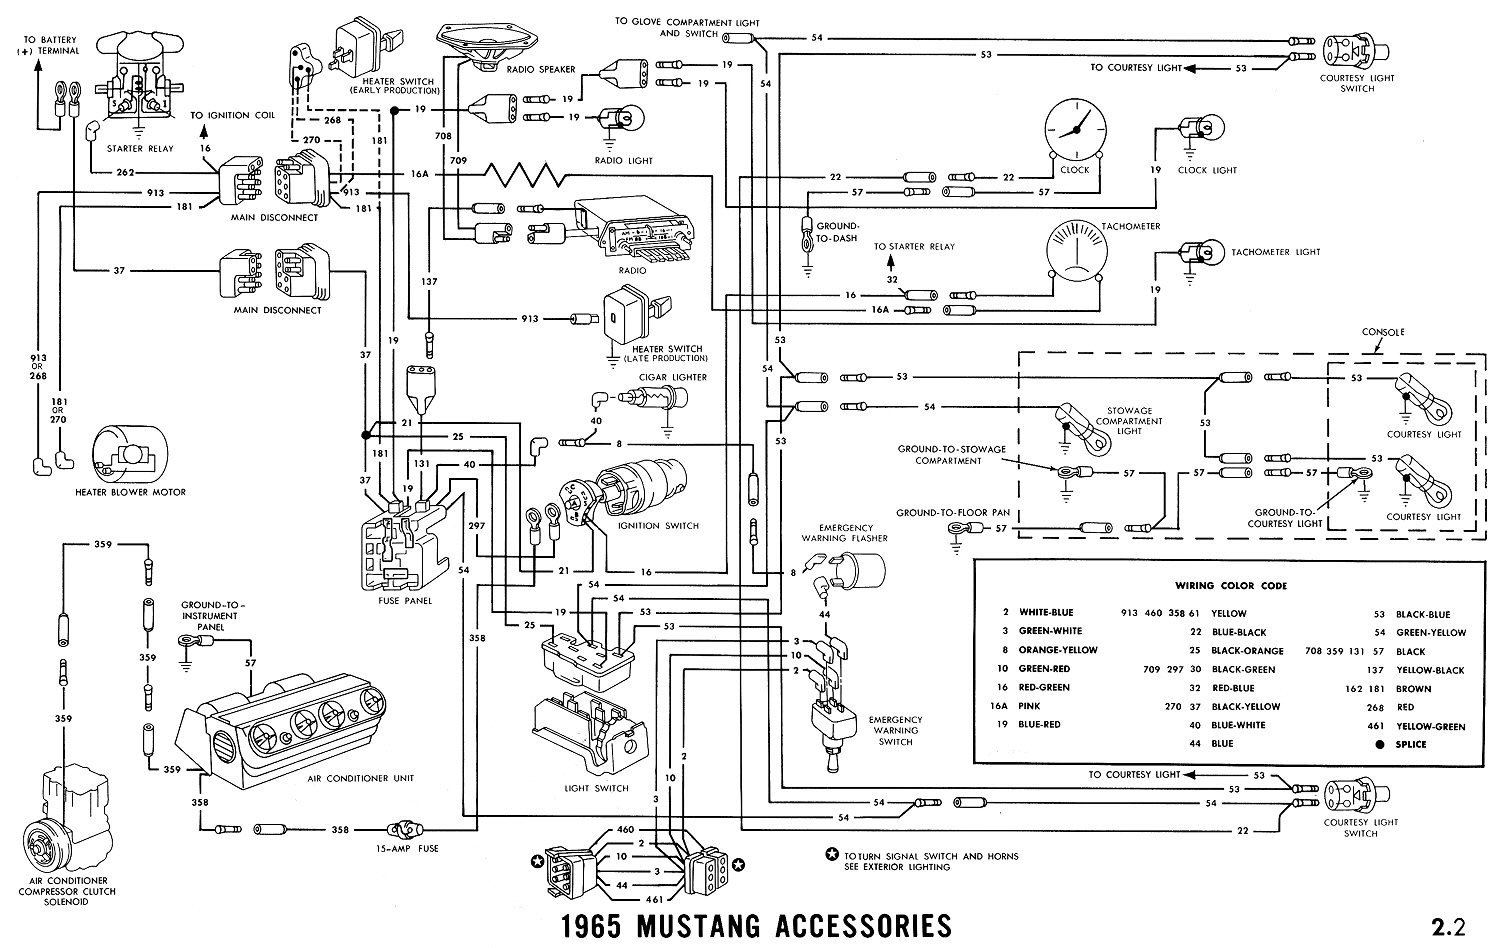 1965i 1965 mustang wiring diagrams average joe restoration lionel accessories wiring diagrams at bayanpartner.co